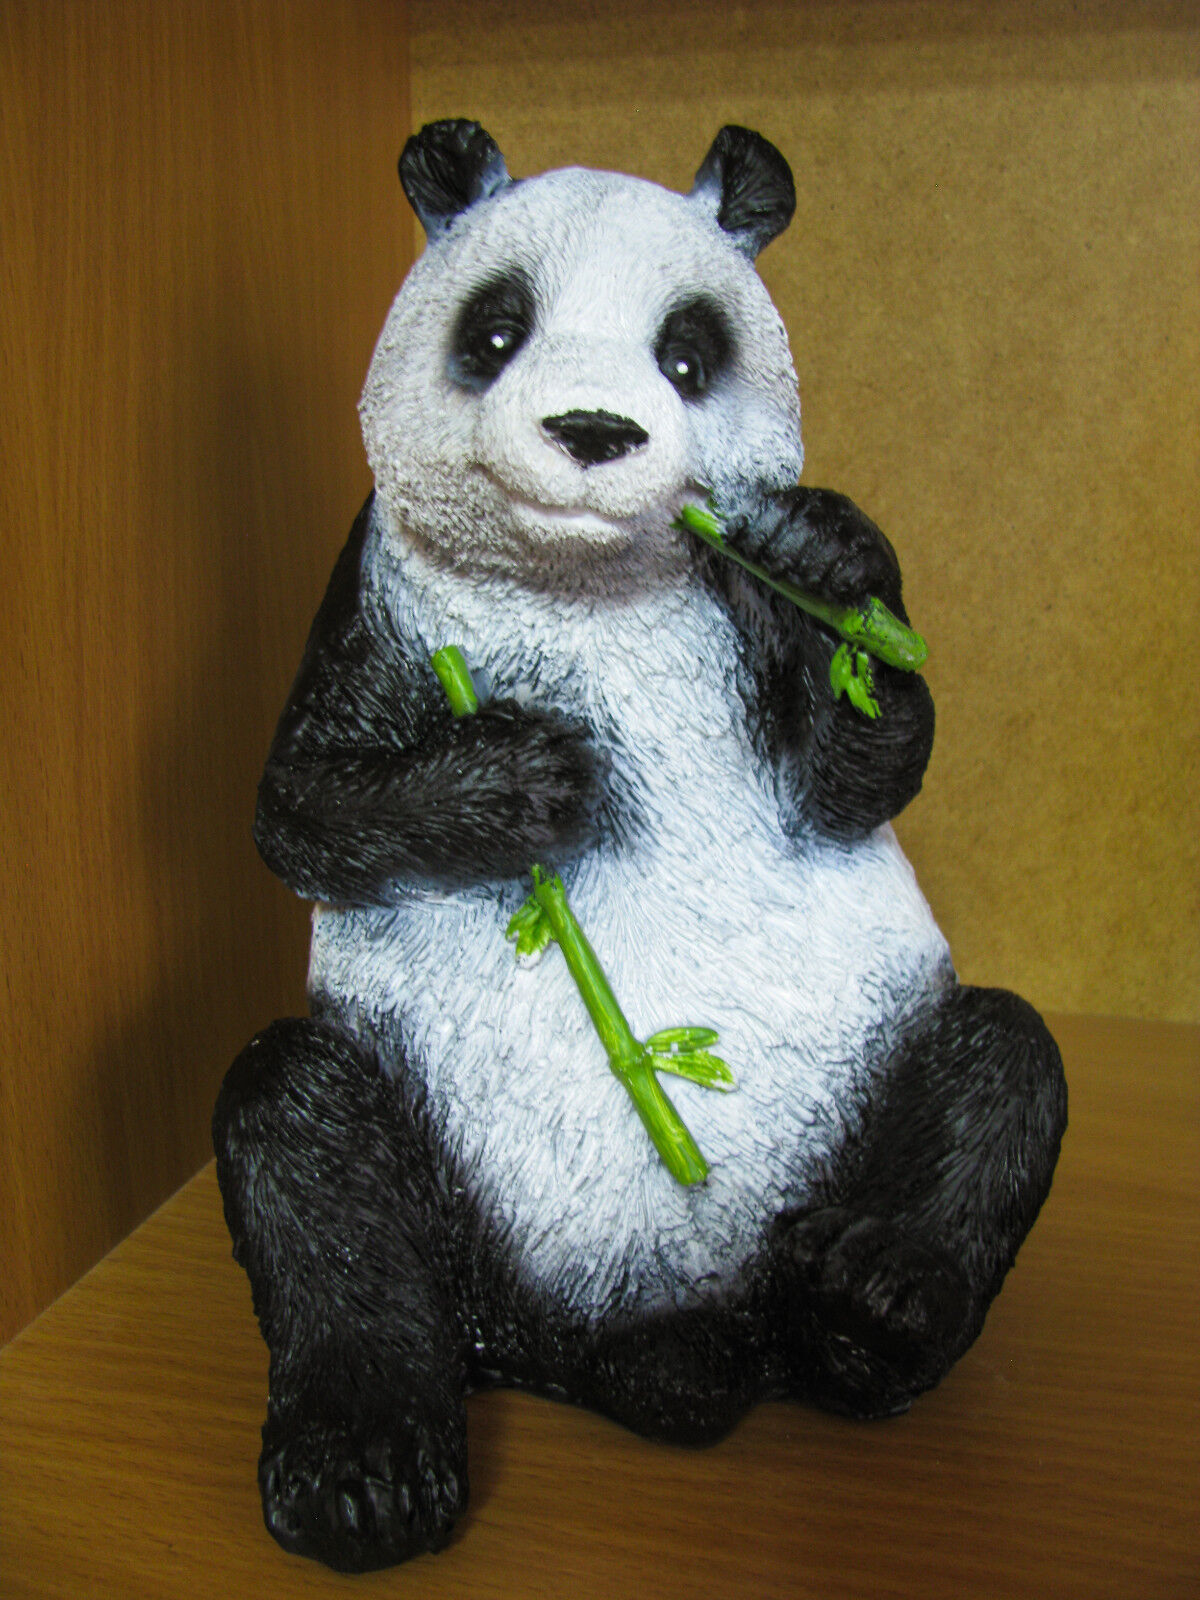 Panda Bear Figurines Large Outdoor Sculpture Garden Statue Decor Yard Patio Lawn